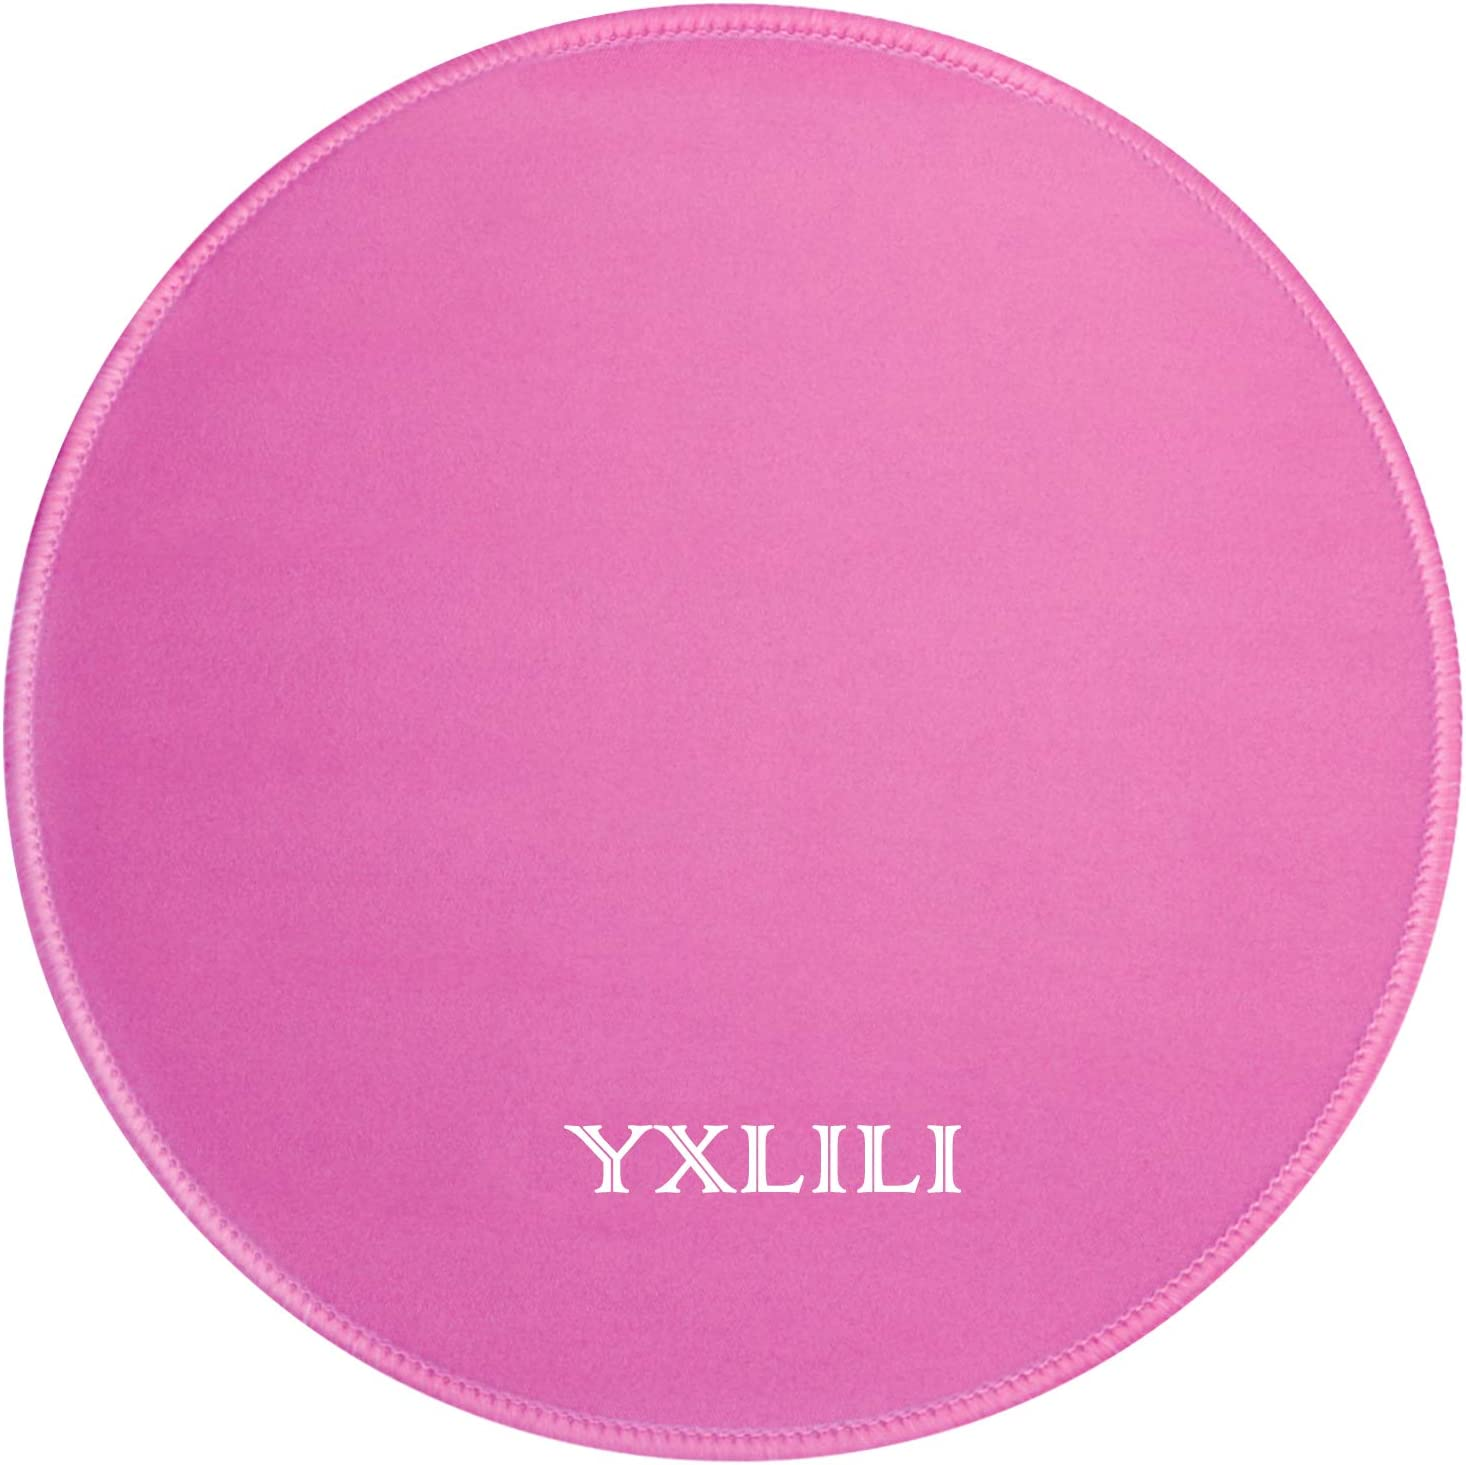 Wholesale YXLILI Mouse Pad 9.84inch Gaming Mat Complete Free Shipping Round Pads wit